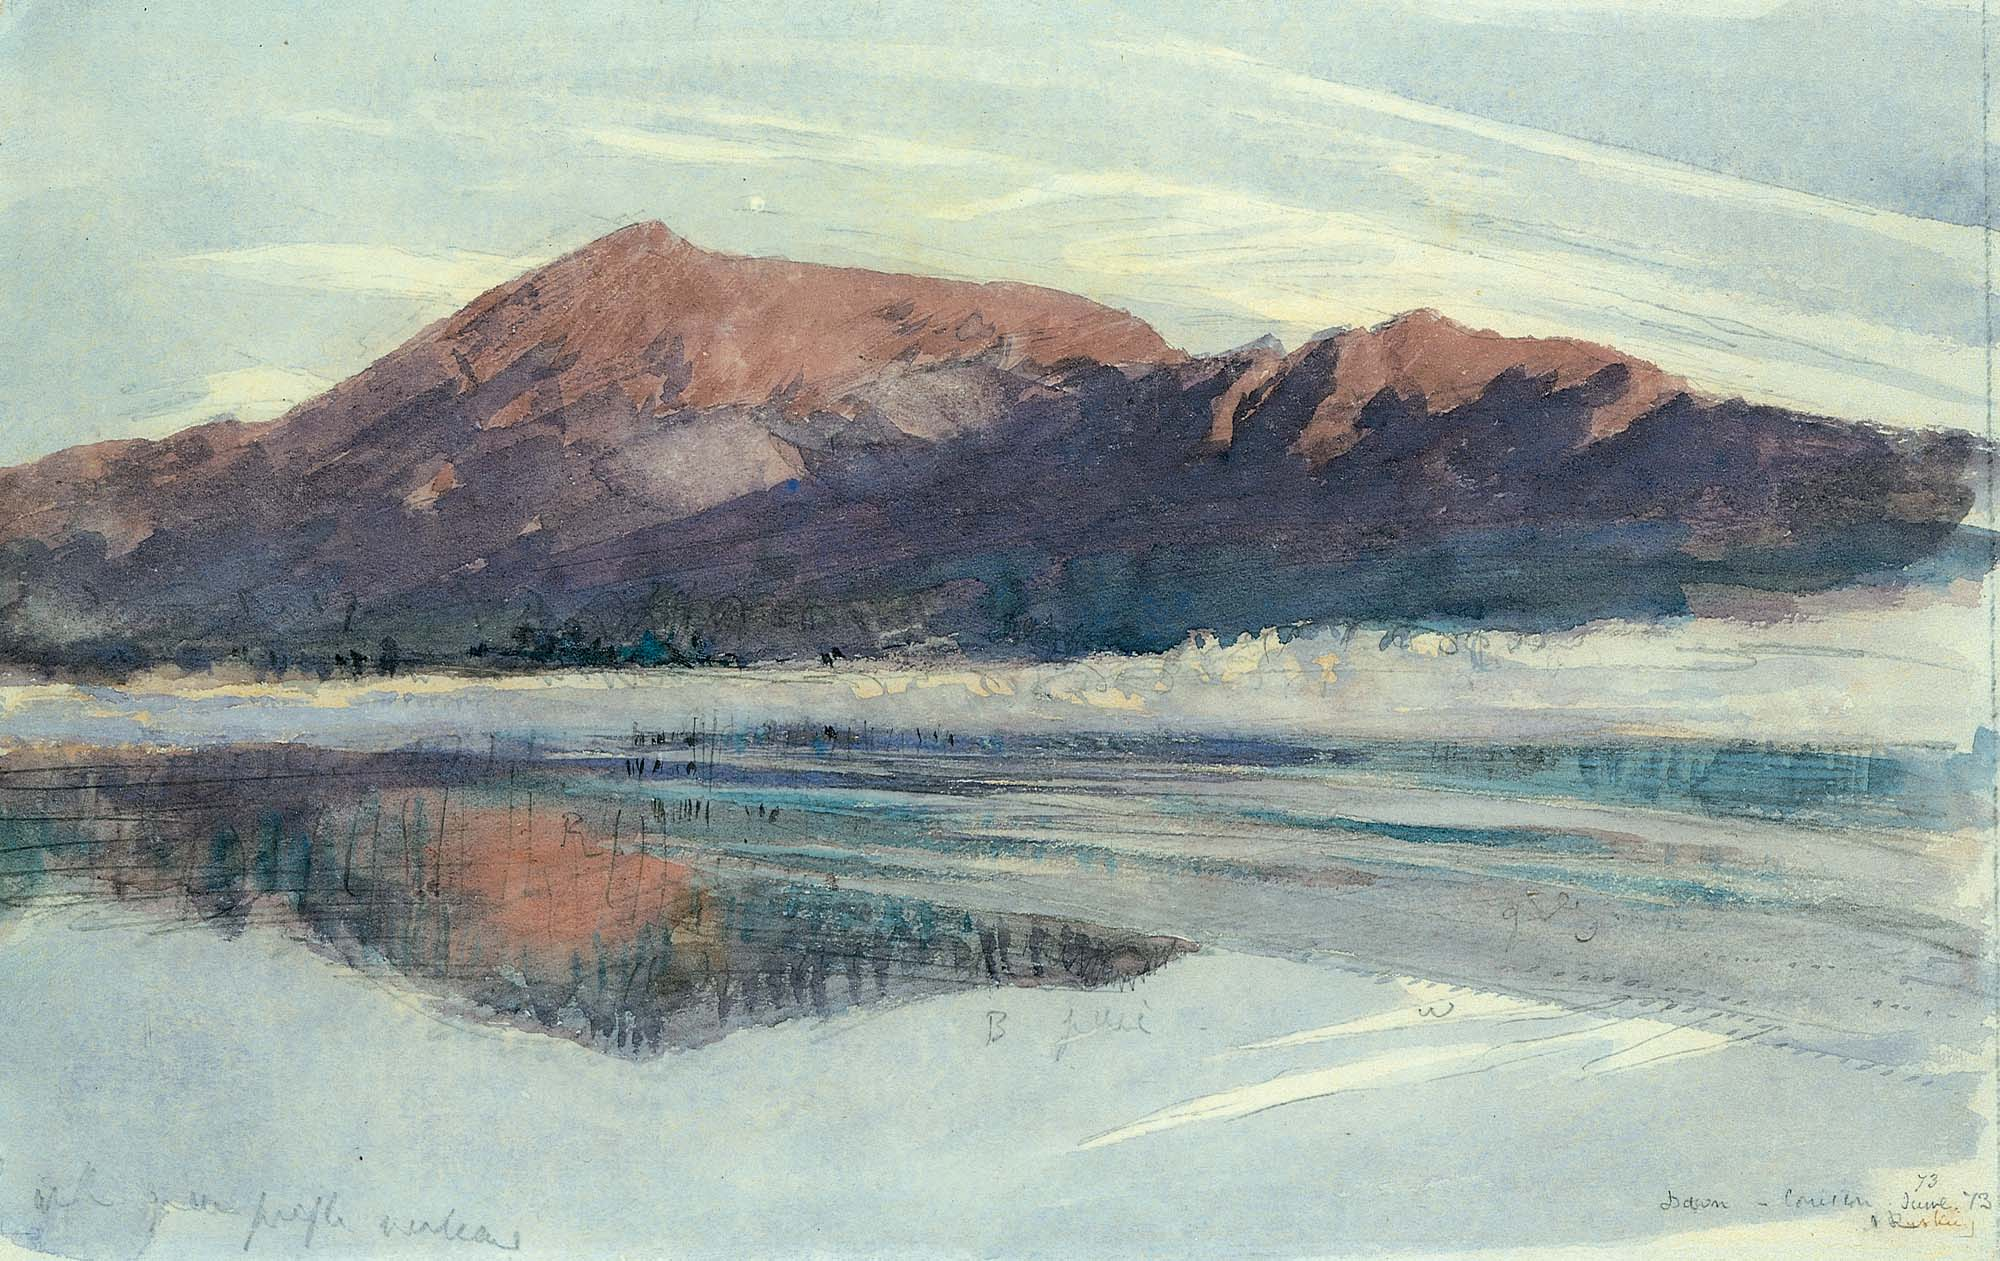 a watercolour of a hill overlooking a lake